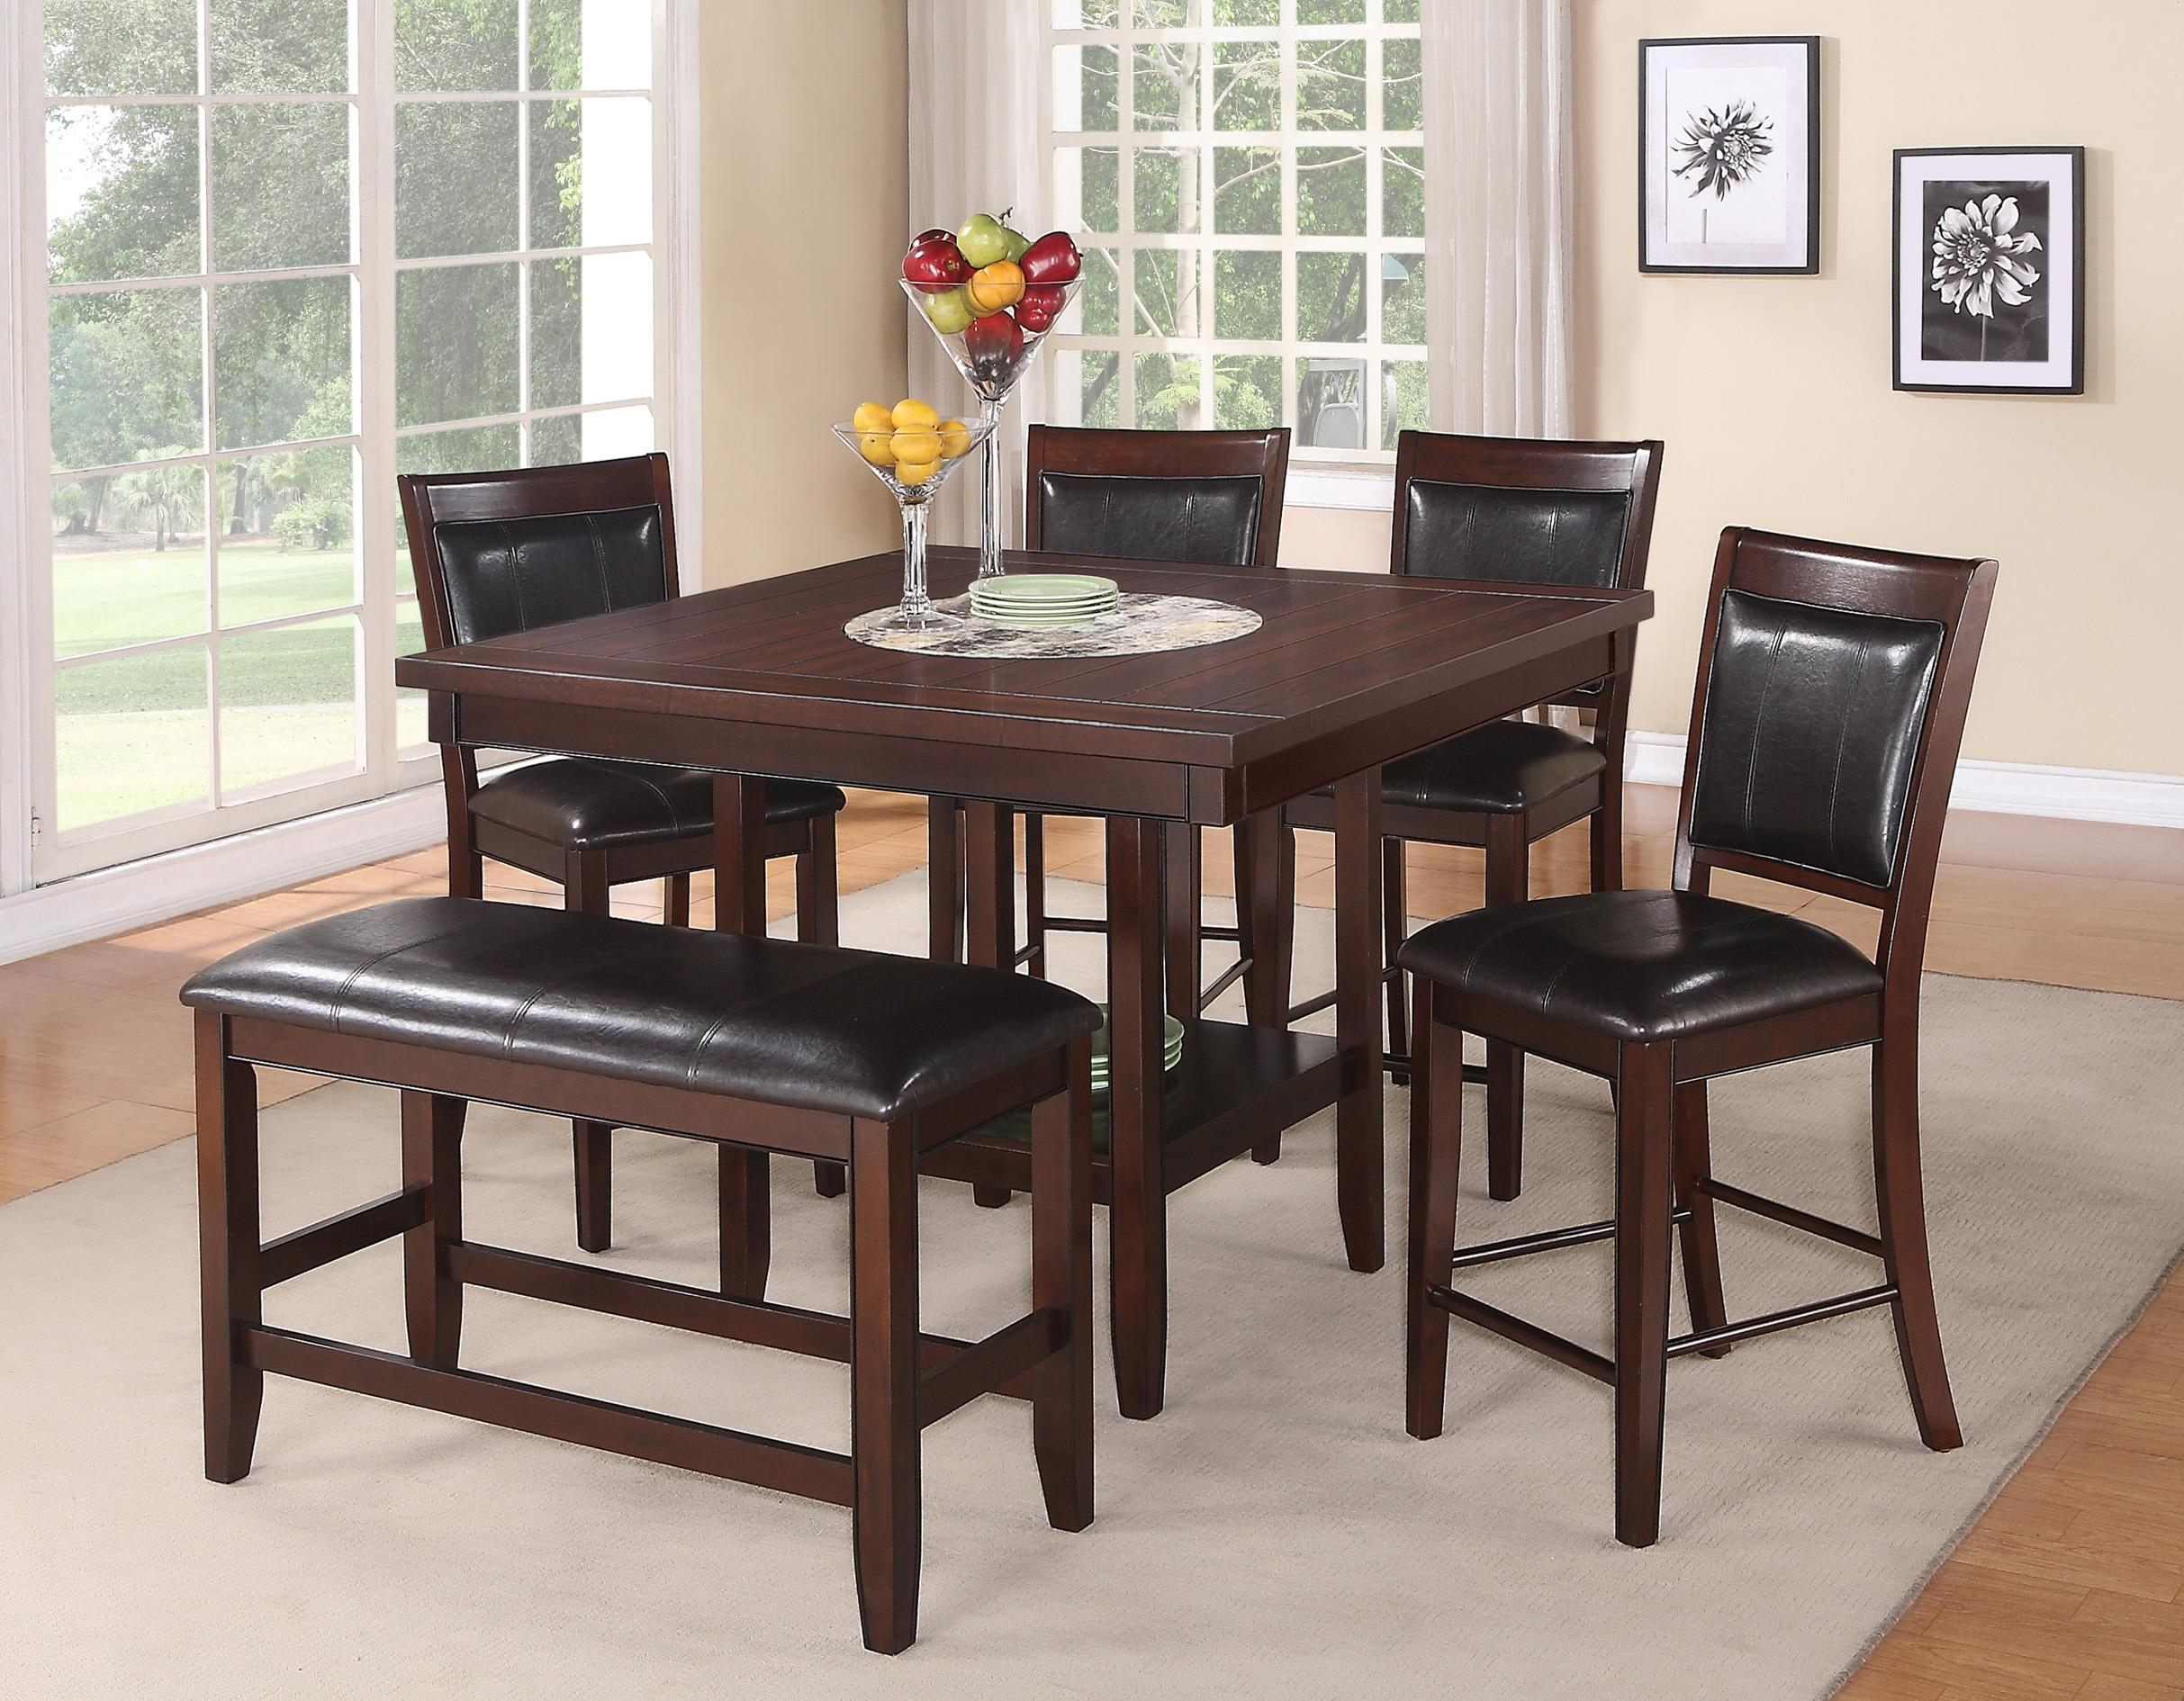 high table and chairs for kitchen u shaped chair cushions crown mark fulton 6 pc counter height bench set